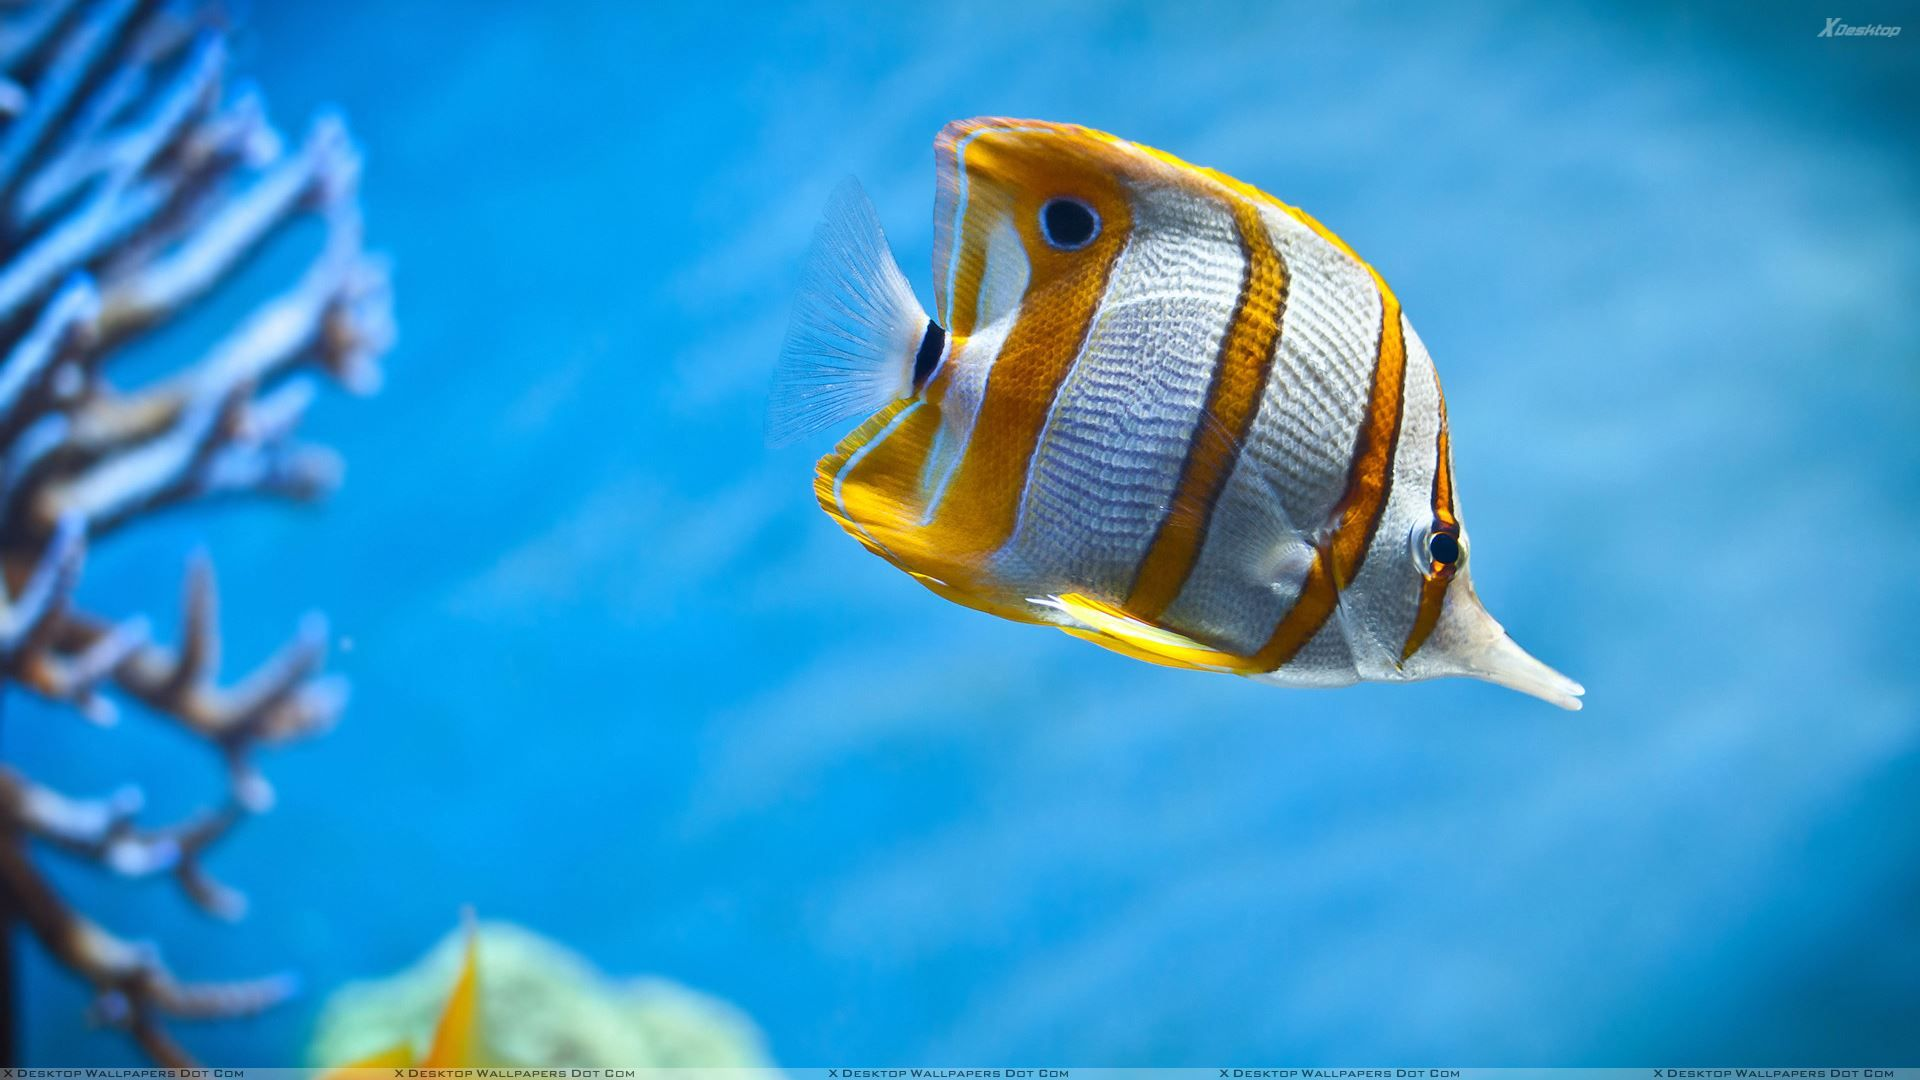 Explore Fish Wallpaper, Tank Wallpaper, And More